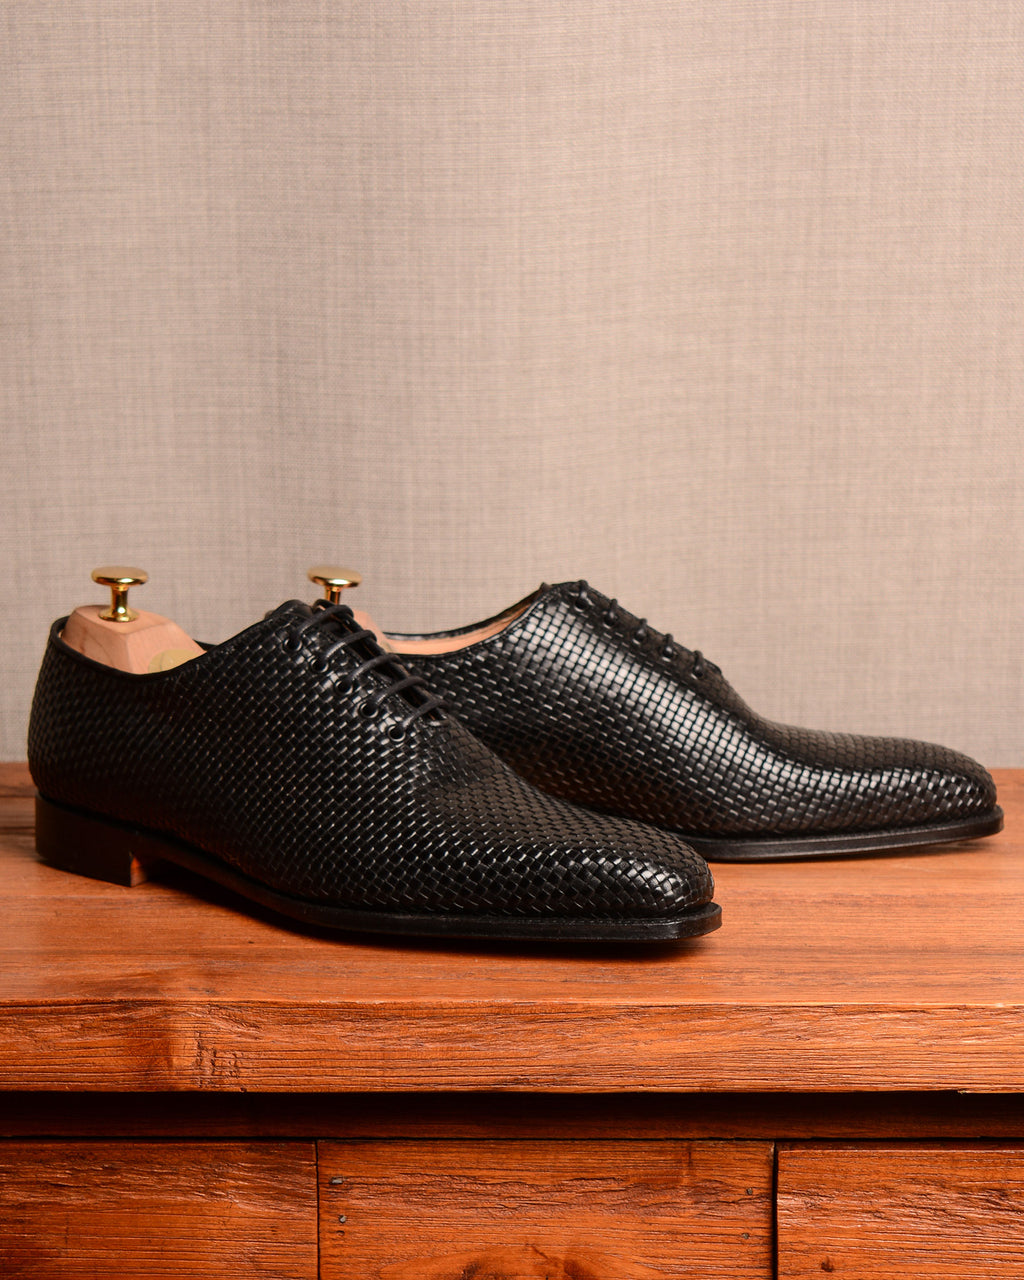 Crockett & Jones Alex - Woven Black Calf